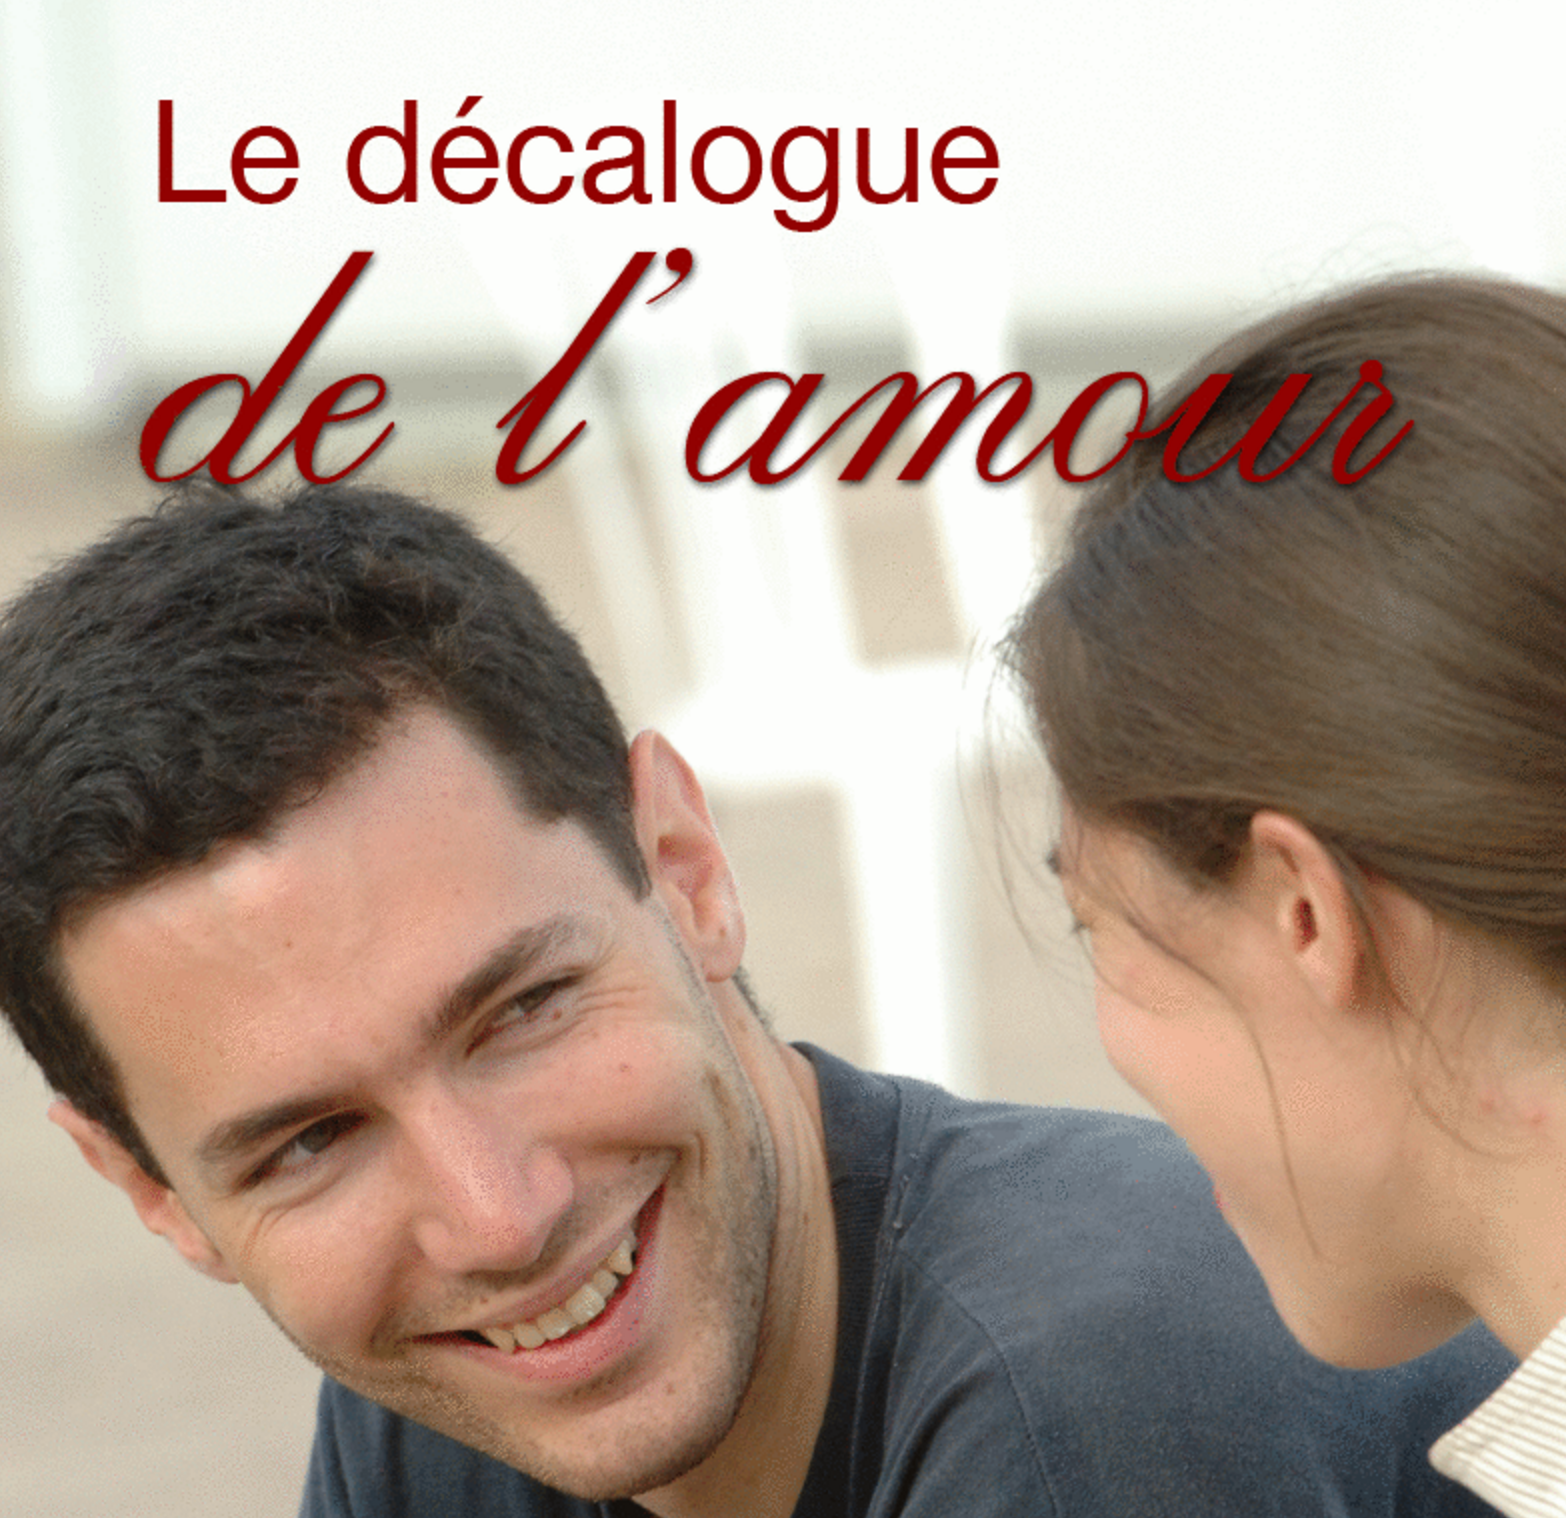 Le décalogue de l'amour (2)